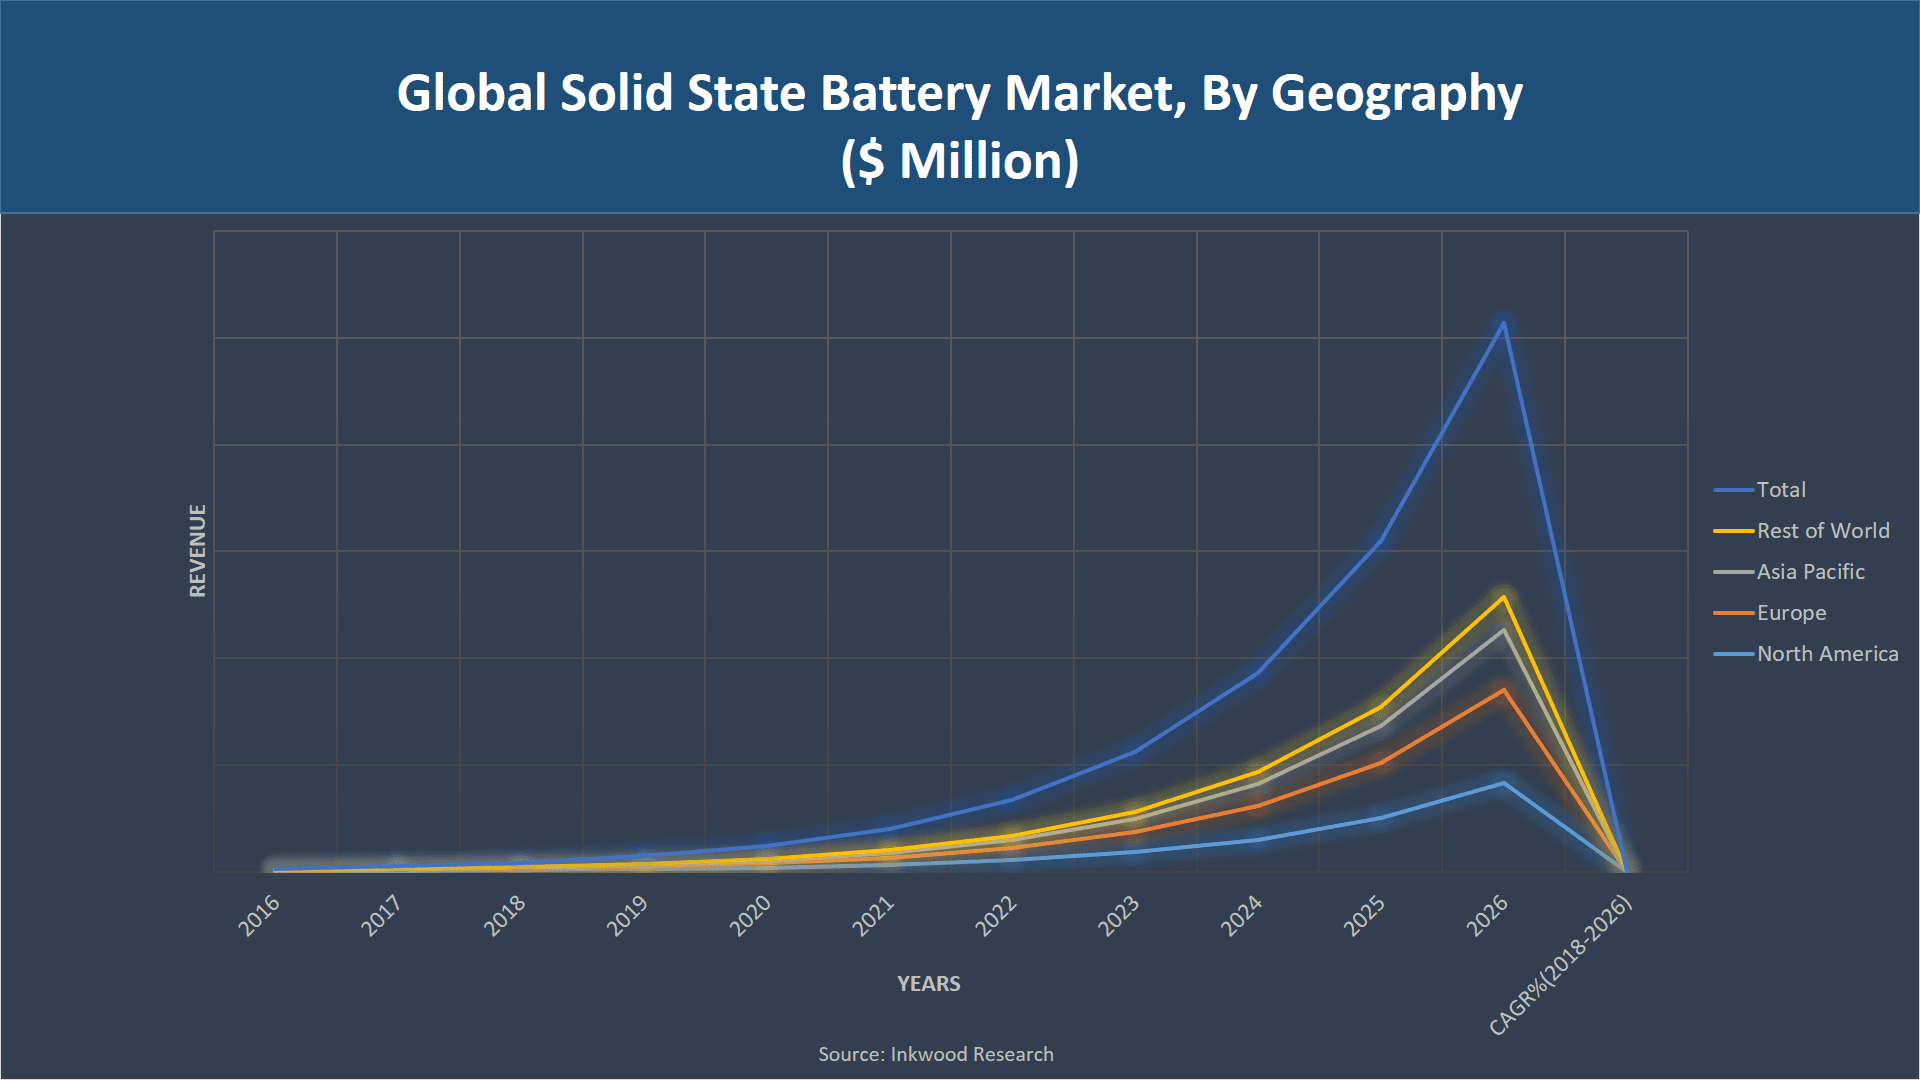 Global Solid State Battery Market To Exhibit Tremendous Growth